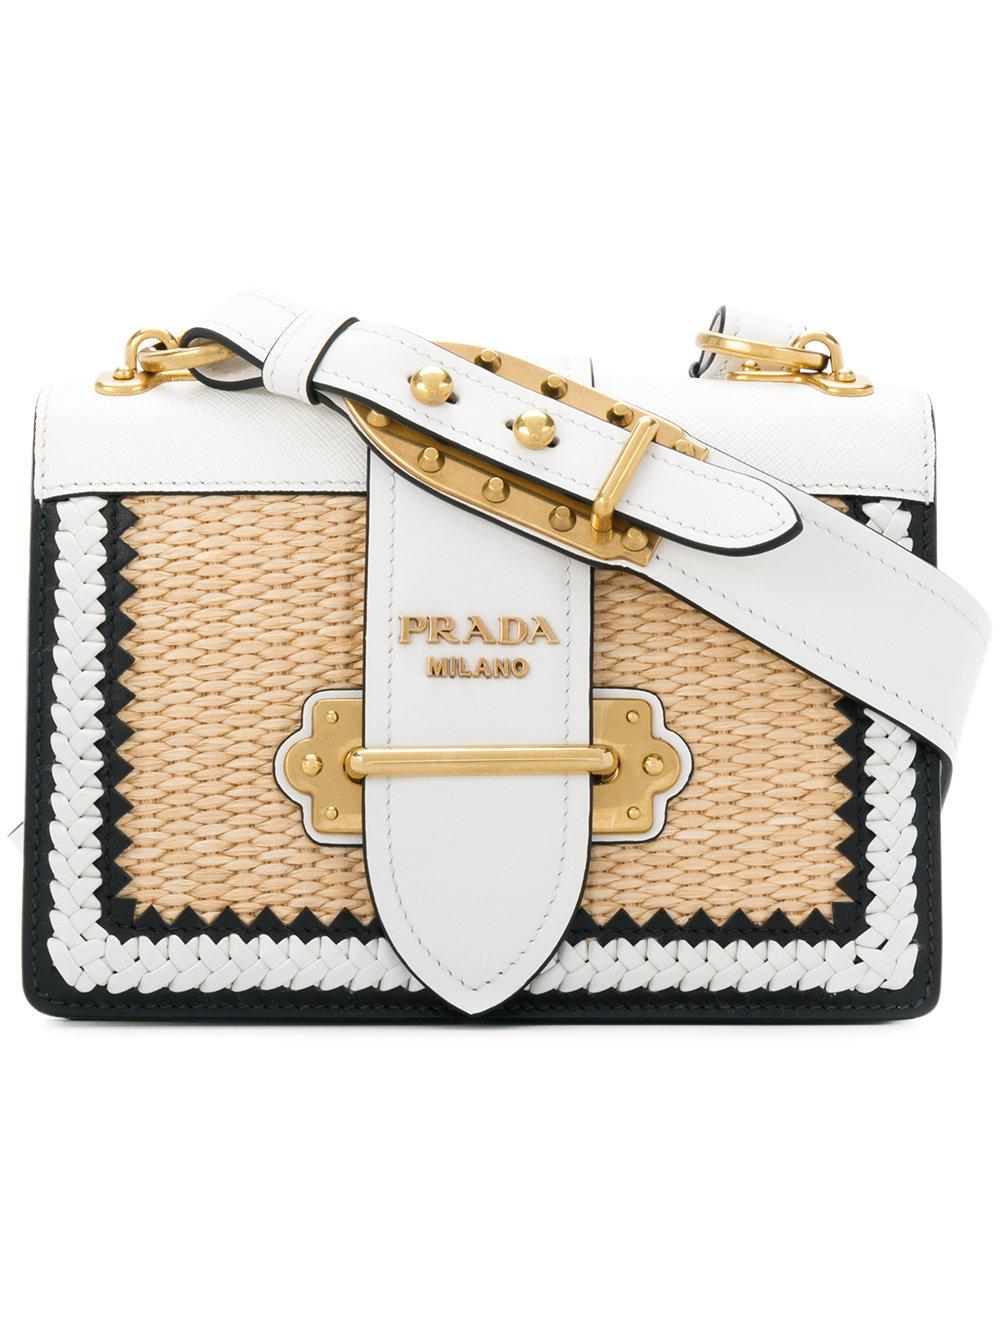 325c9ce4552e Prada Cahier Whipstitched Leather And Raffia Shoulder Bag In White ...